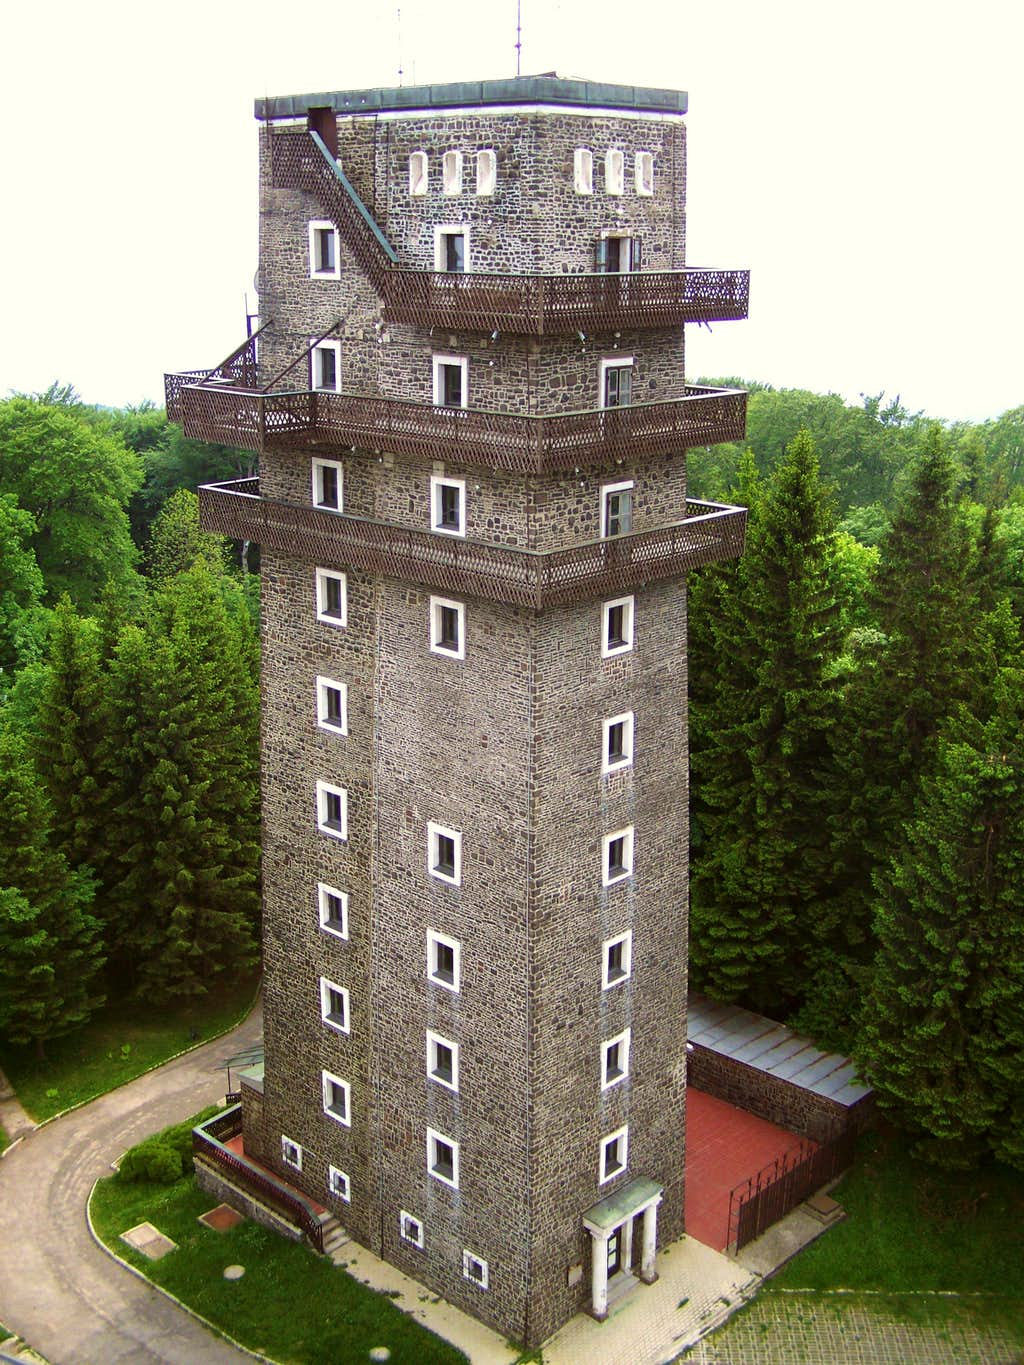 The old tower as seen from the new TV-tower on Kékes